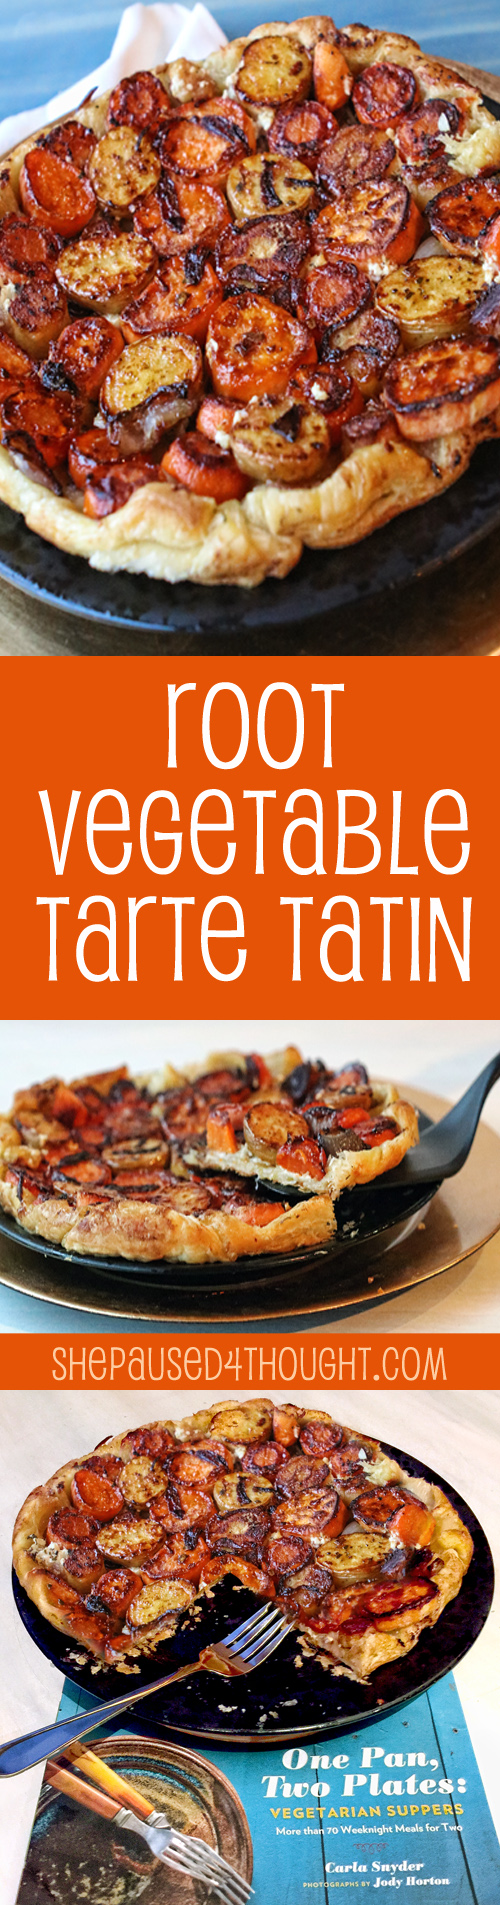 Root Vegetable Tarte Tatin | She Paused 4 Thought